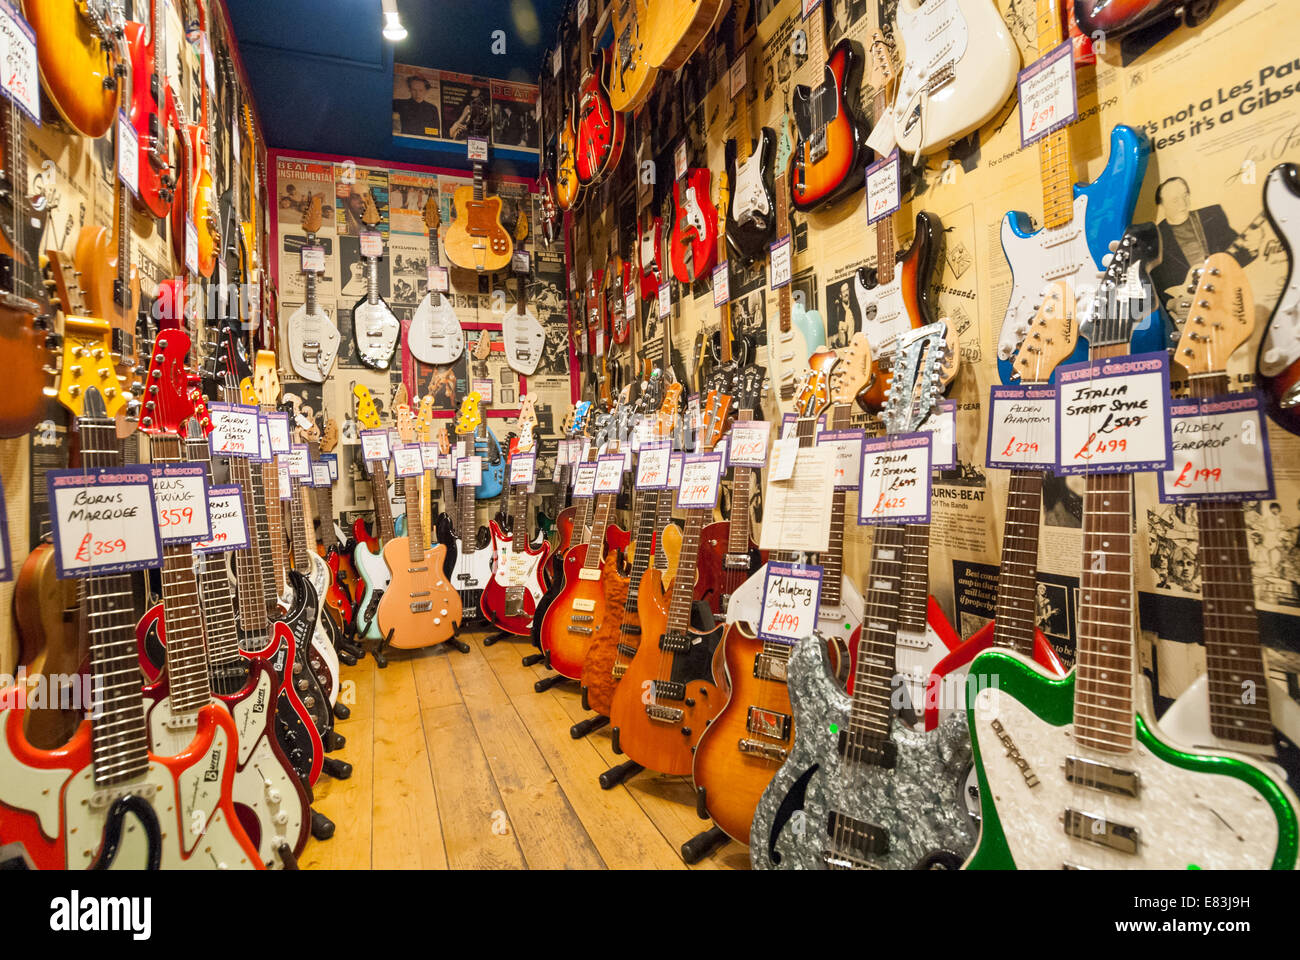 electric guitars in andy 39 s guitar shop in denmark street london stock photo 73838957 alamy. Black Bedroom Furniture Sets. Home Design Ideas